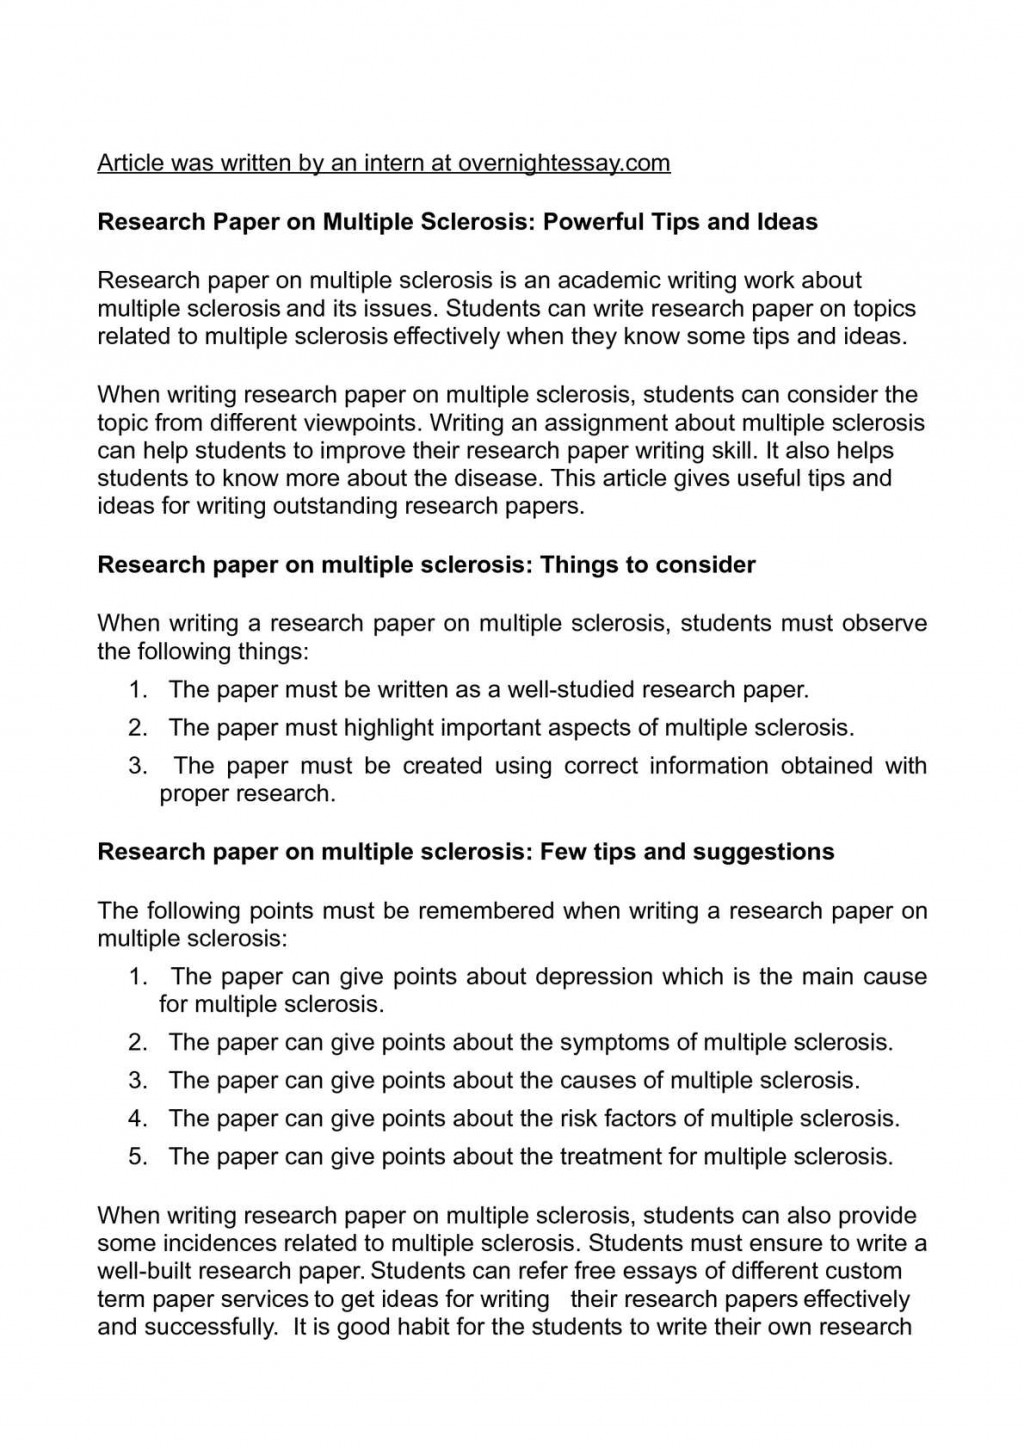 015 P1 Research Paper Write Frightening Papers In Latex My For Me Online Free Large